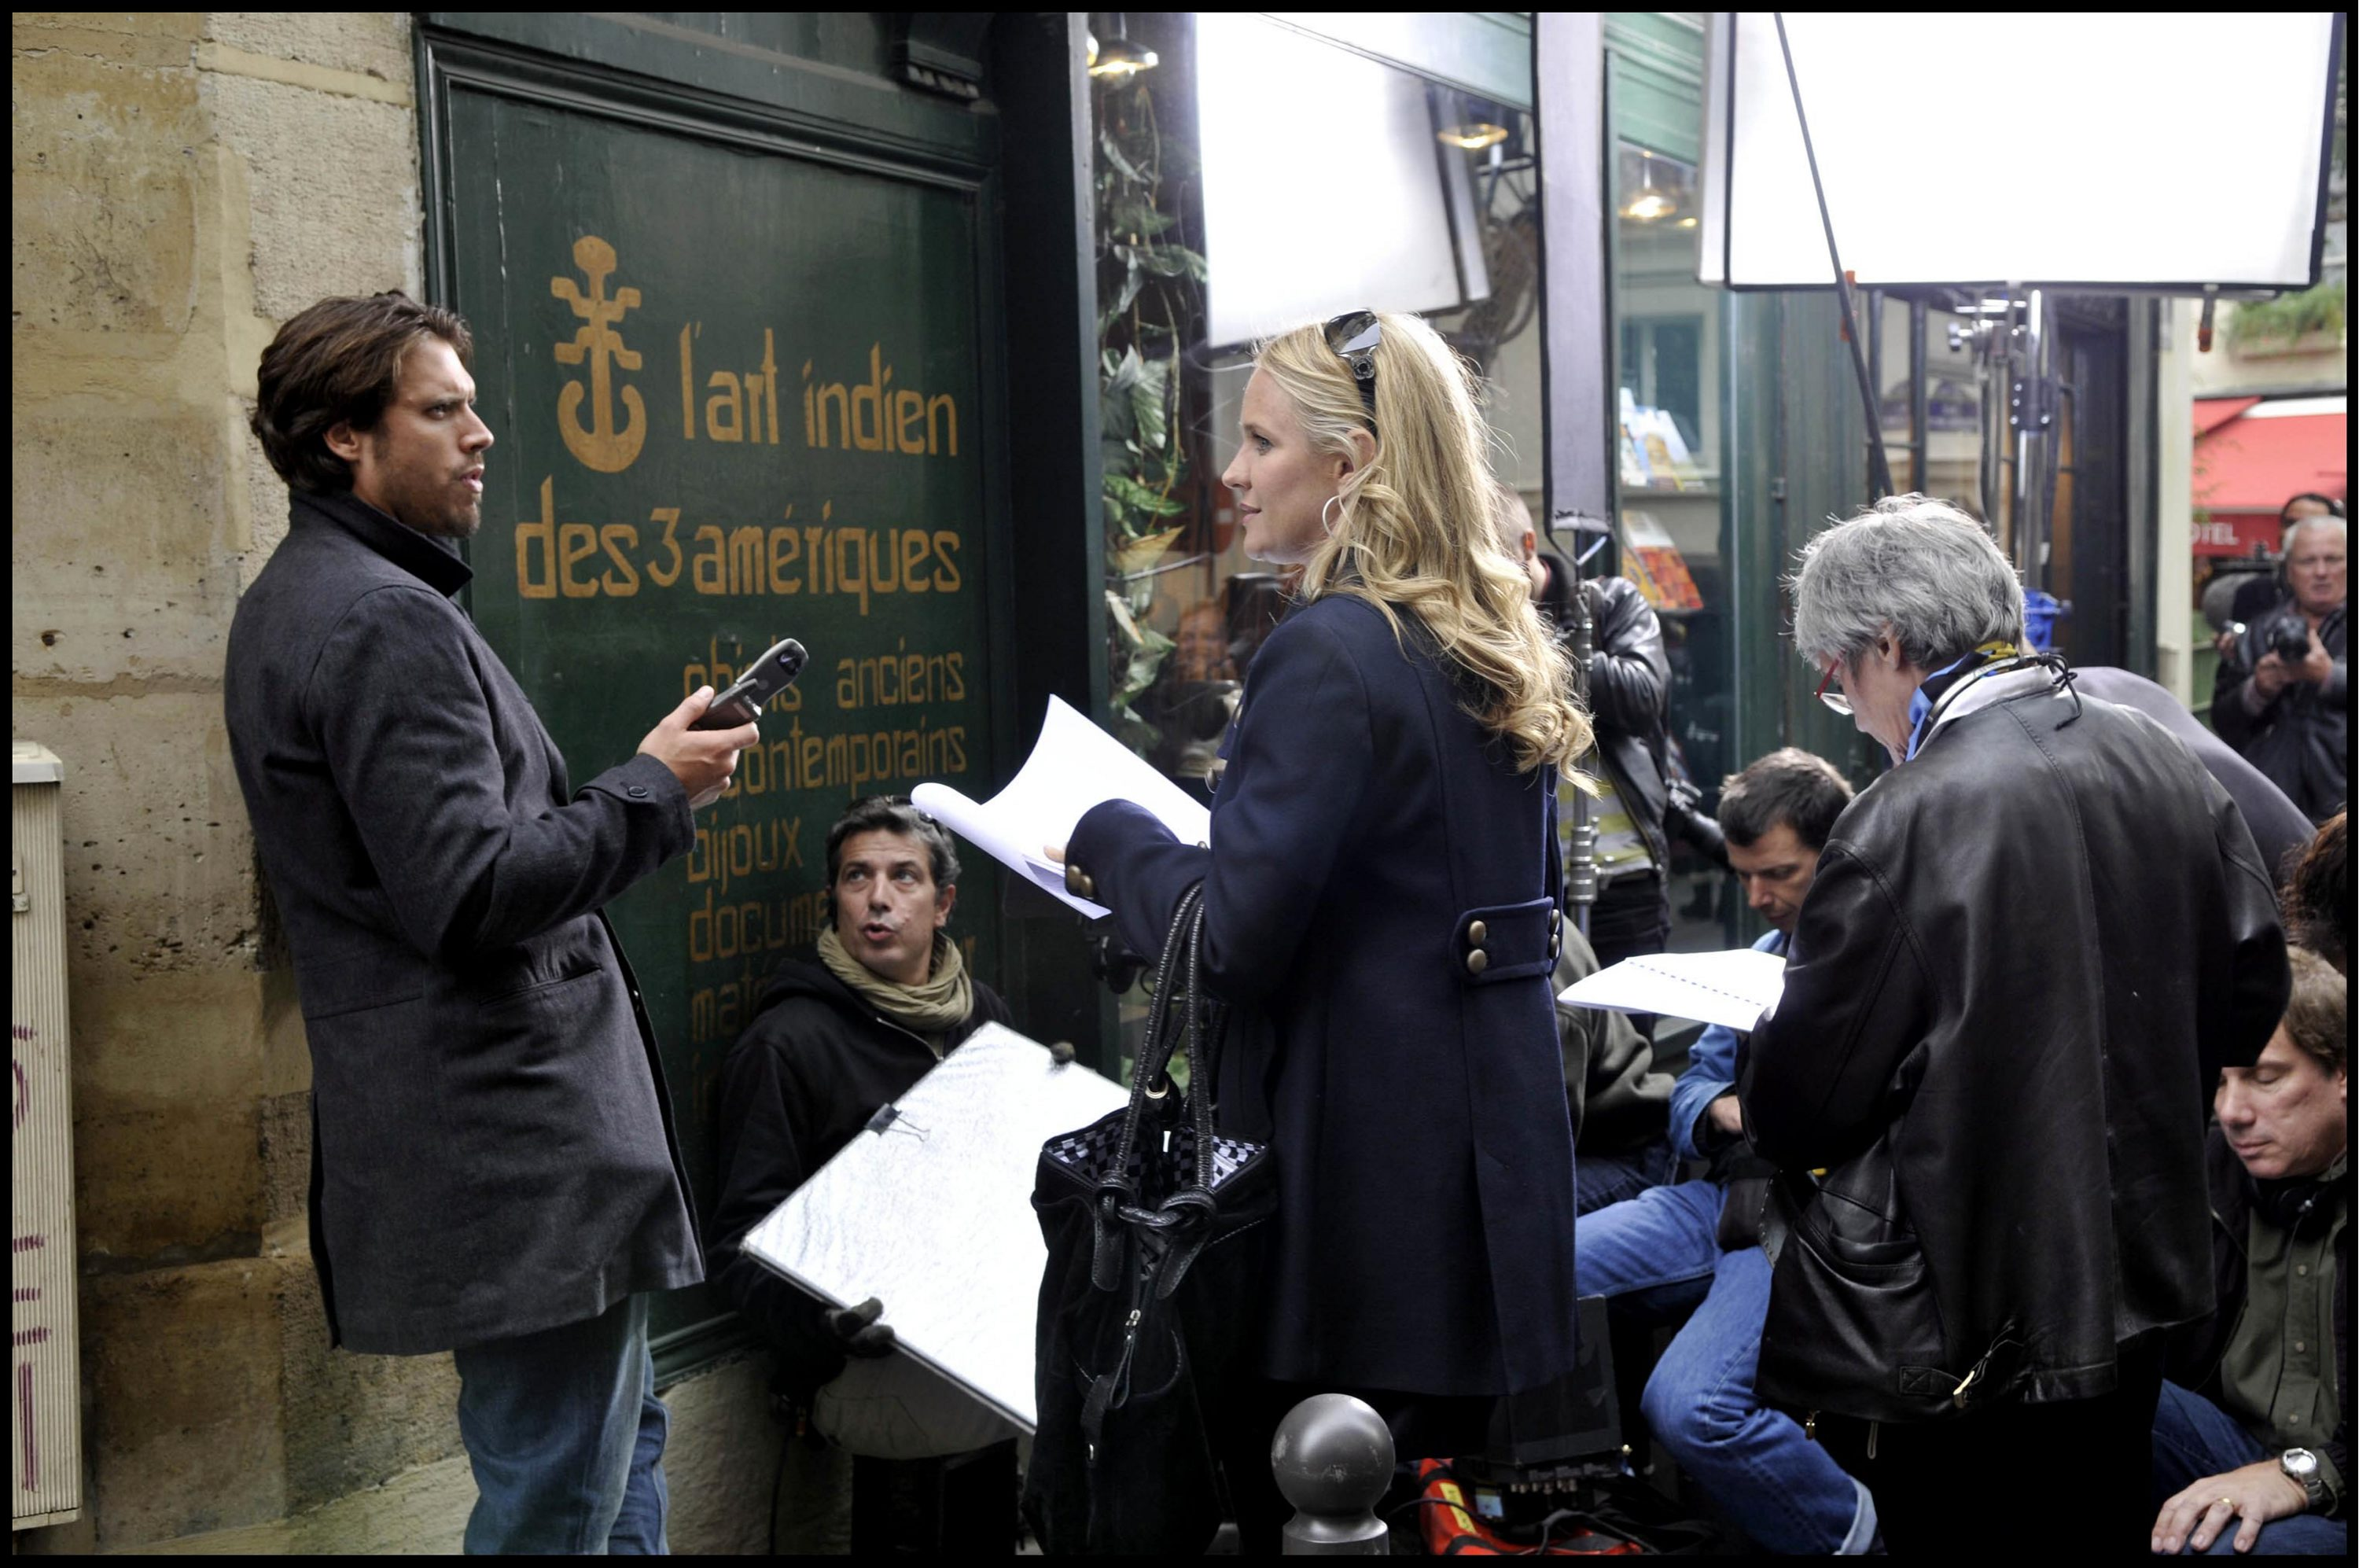 """Sharon Case, Joshua Morrow """"The Young and the Restless"""" Location - Behind the Scenes Paris, France 10/8/08 ©Pierre Guibert/Visual/jpistudios.com 310-657-9661 Episode # 9015, 9016, 9017"""